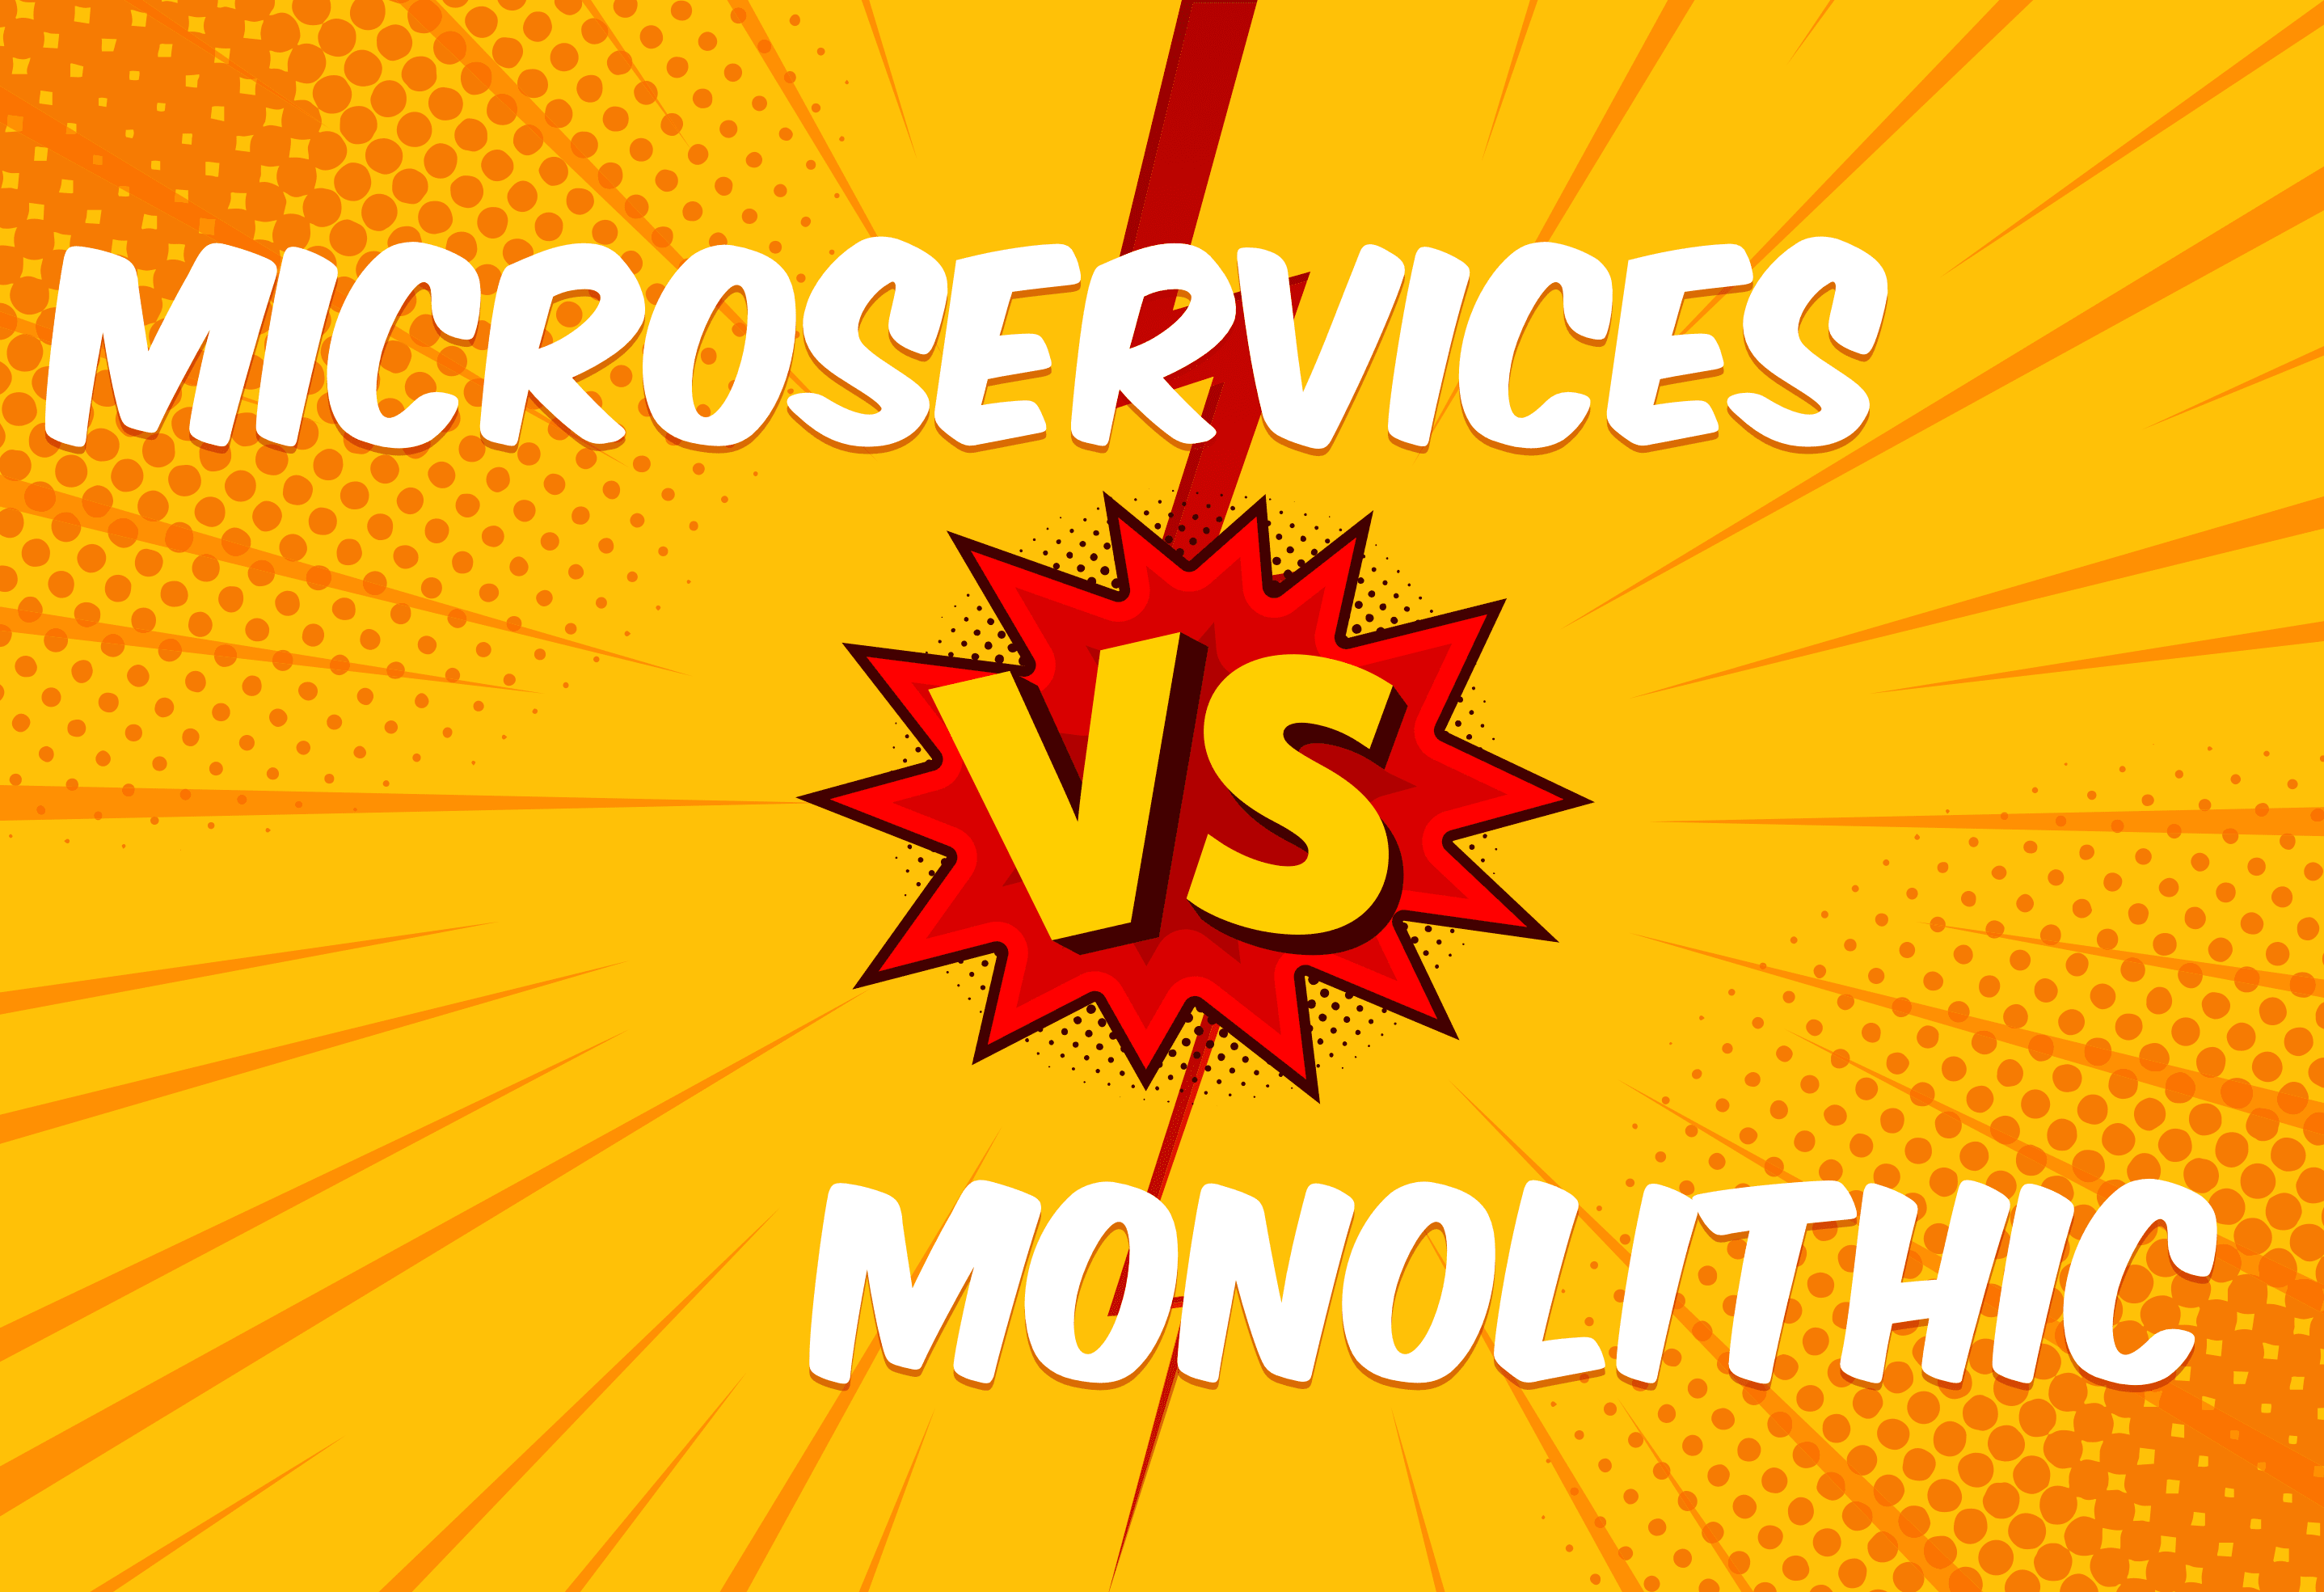 Microservices vs. Monolithic: The Differences You Should Know